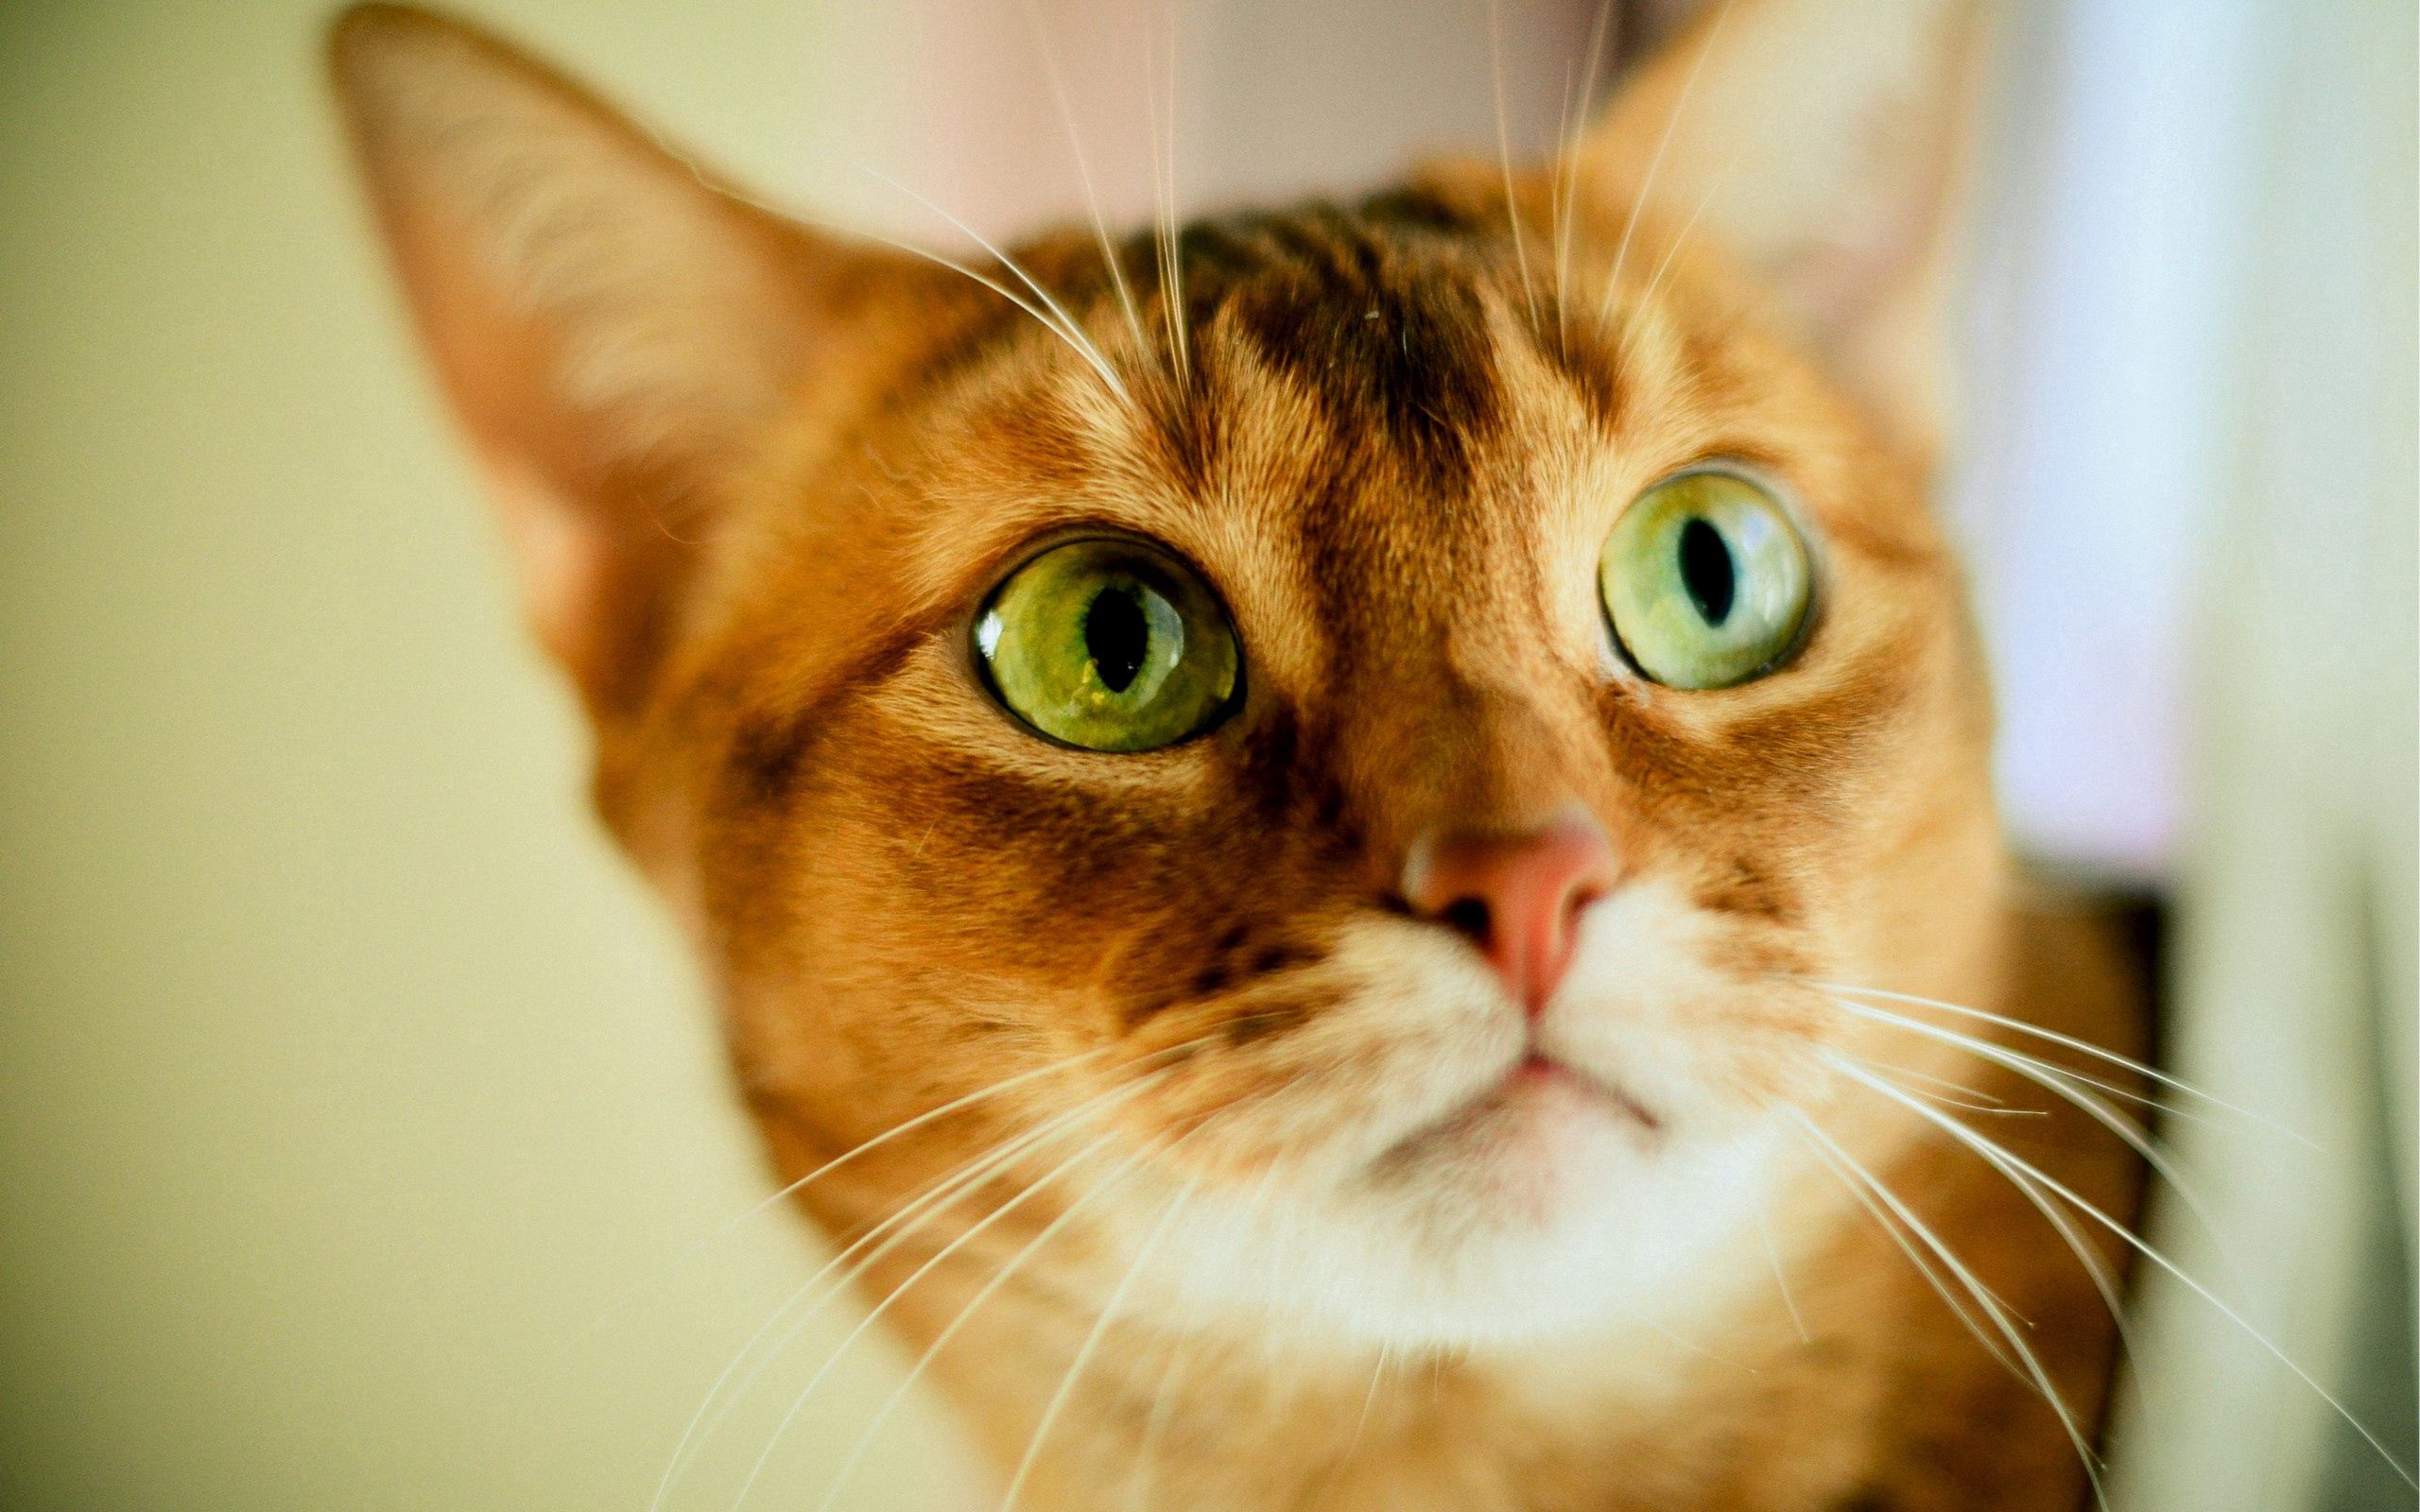 61526 download wallpaper Animals, Cat, Muzzle, Sight, Opinion, Shine, Light, Striped screensavers and pictures for free